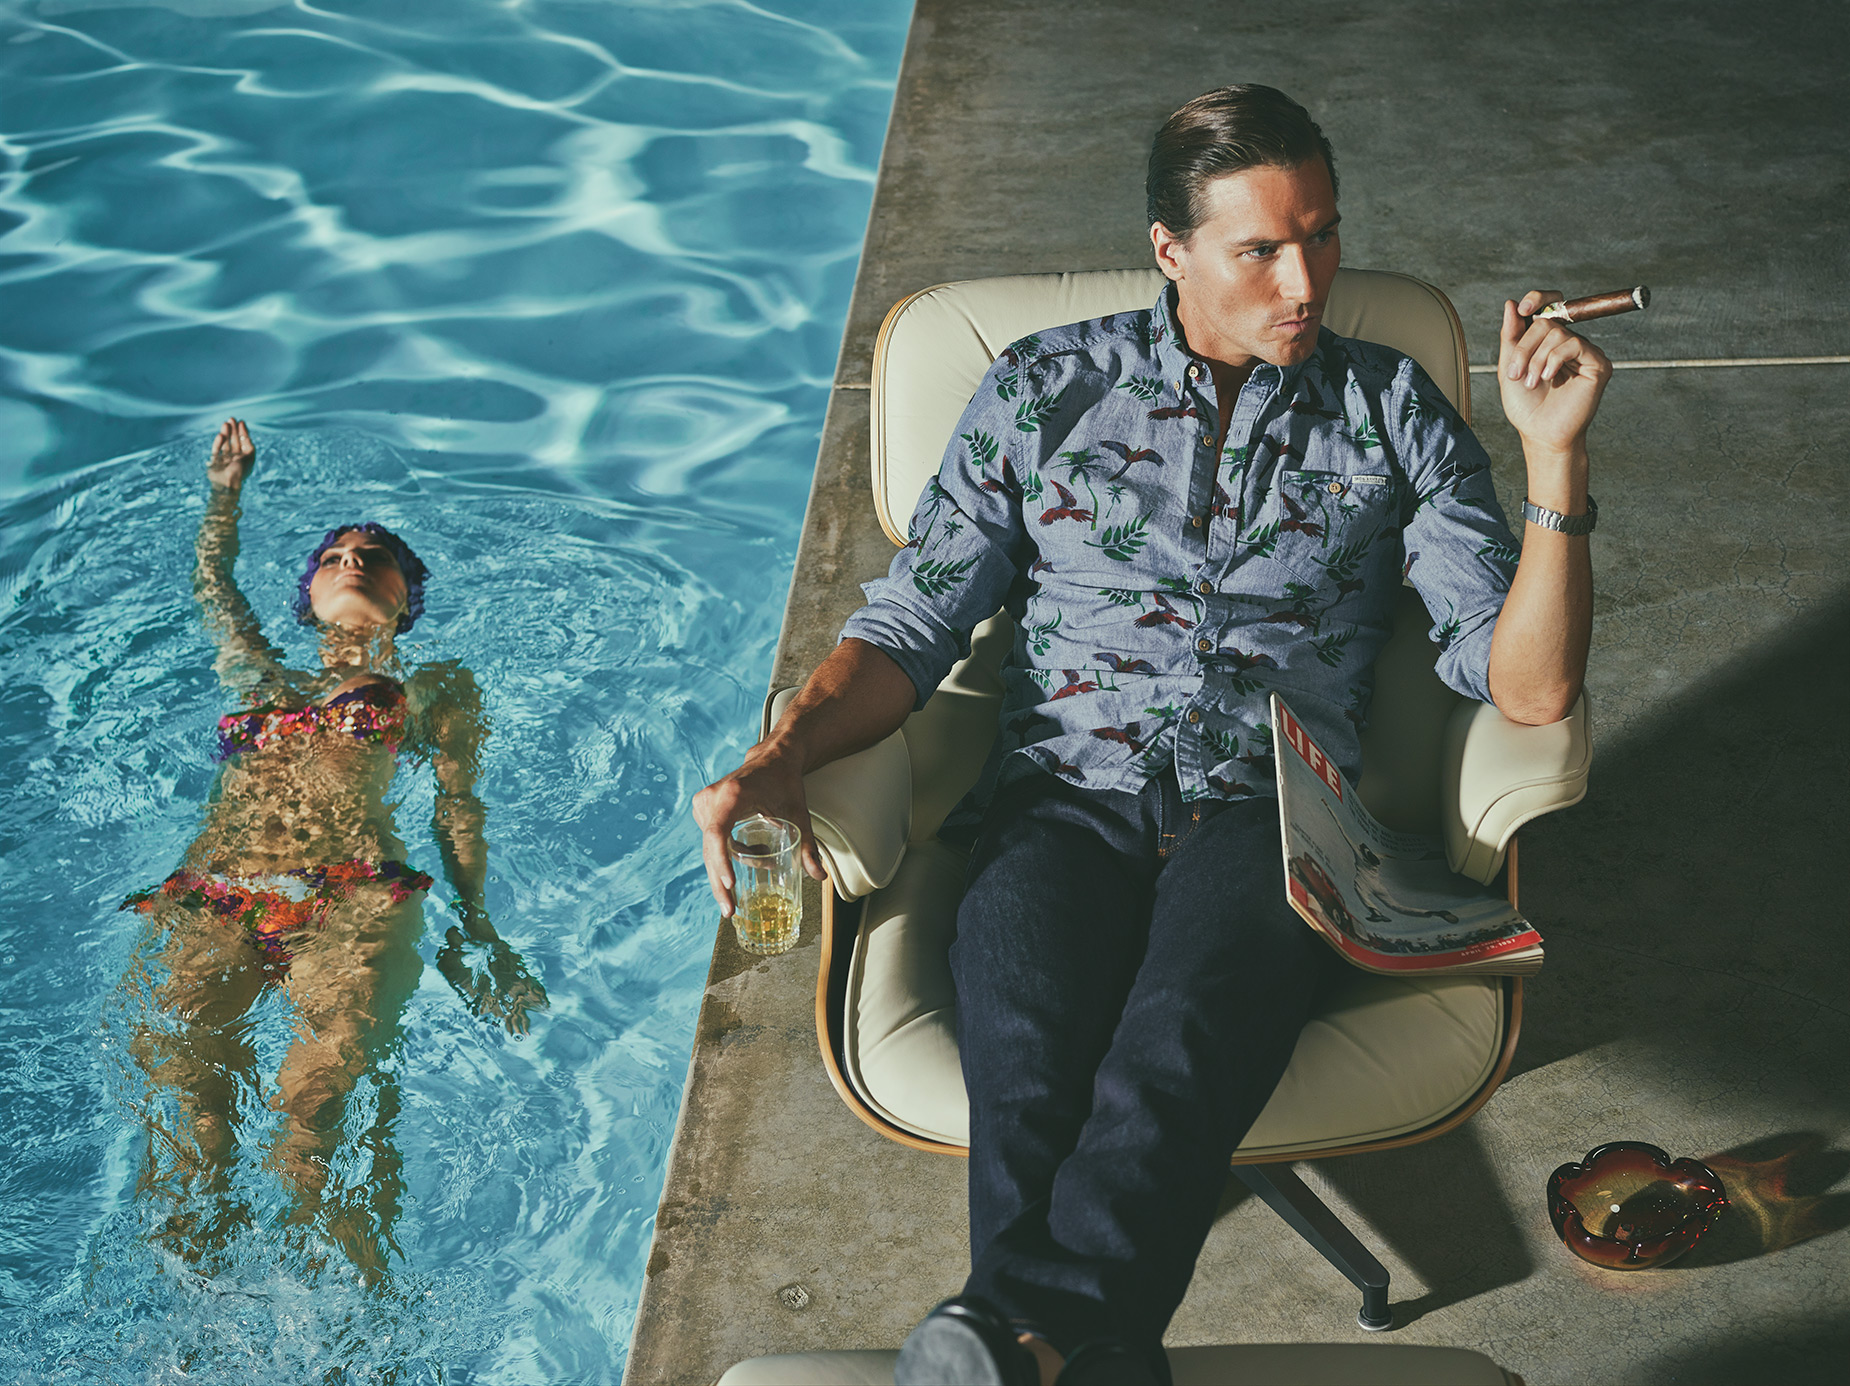 Stahl House Pool Shot, Fashion Editorial